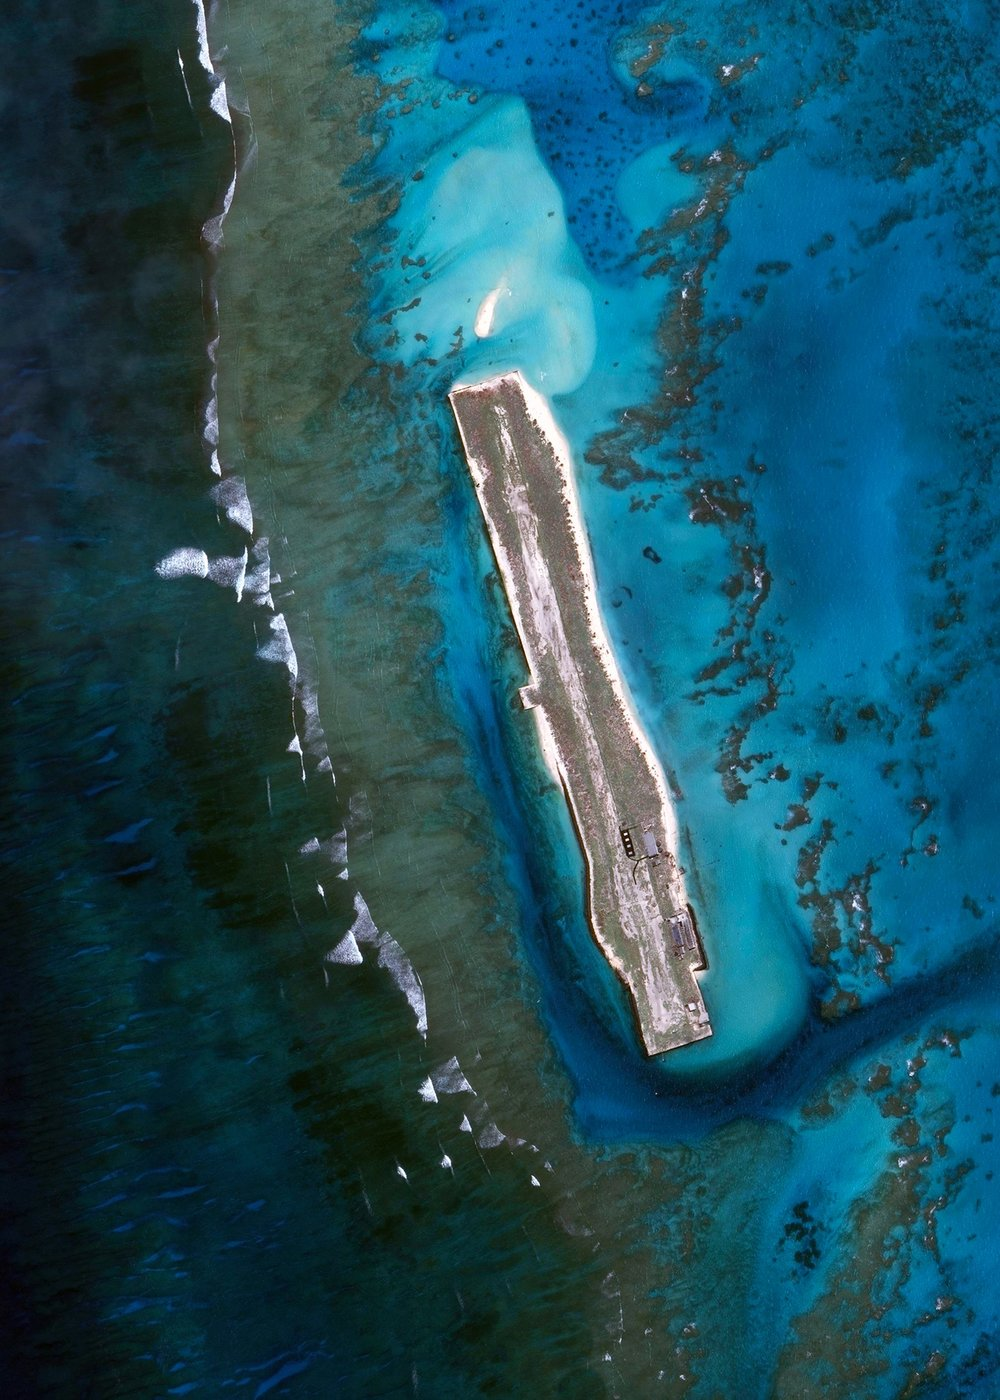 "French Frigate Shoals Airport is a private airfield on Tern Island in French Frigate Shoals, Hawaii. Located roughly 560 miles northwest of Honolulu, the airport has a coral surface that is 3,000 feet long, 200 feet wide, and sits just six feet above sea level. It is owned by the U.S. Fish and Wildlife Service and is only used for emergencies.  23°52'12.5""N, 166°16'58.5""W  Source imagery: DigitalGlobe"